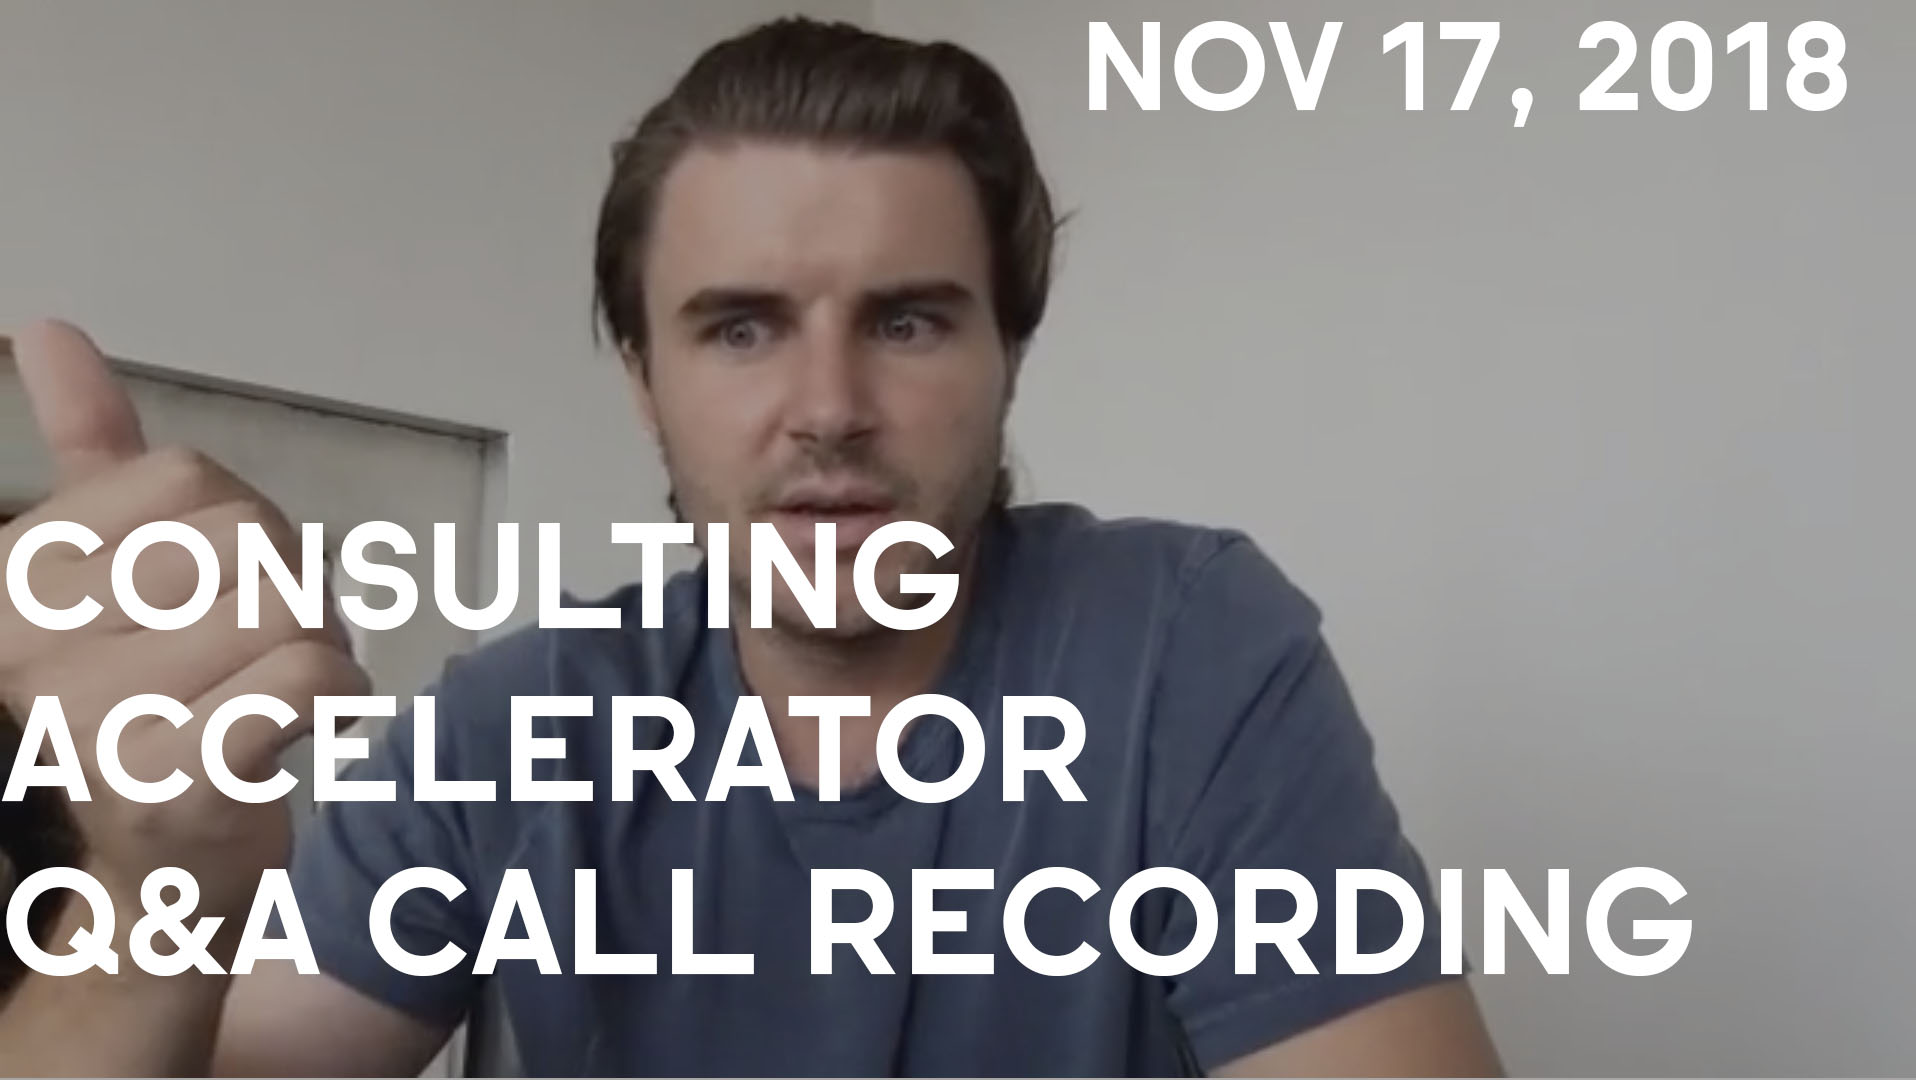 Consulting Accelerator Livestream Q&A, November 17th, 2018